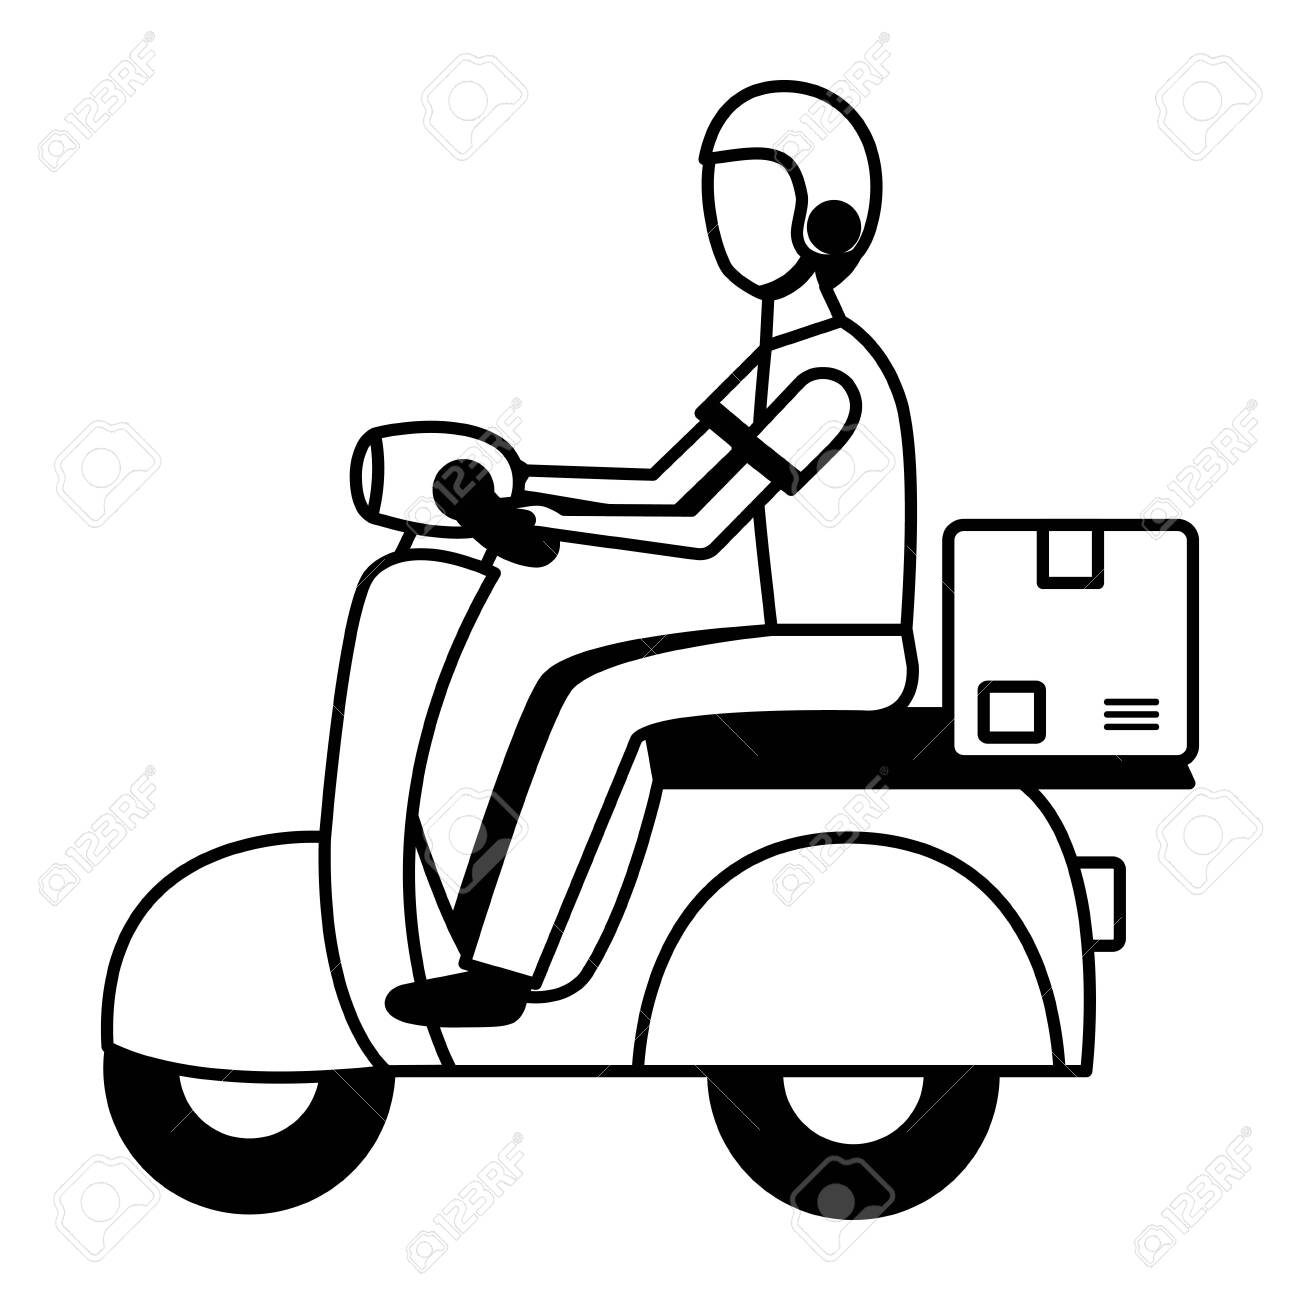 man in motrocycle fast delivery vector illustration - 123039944